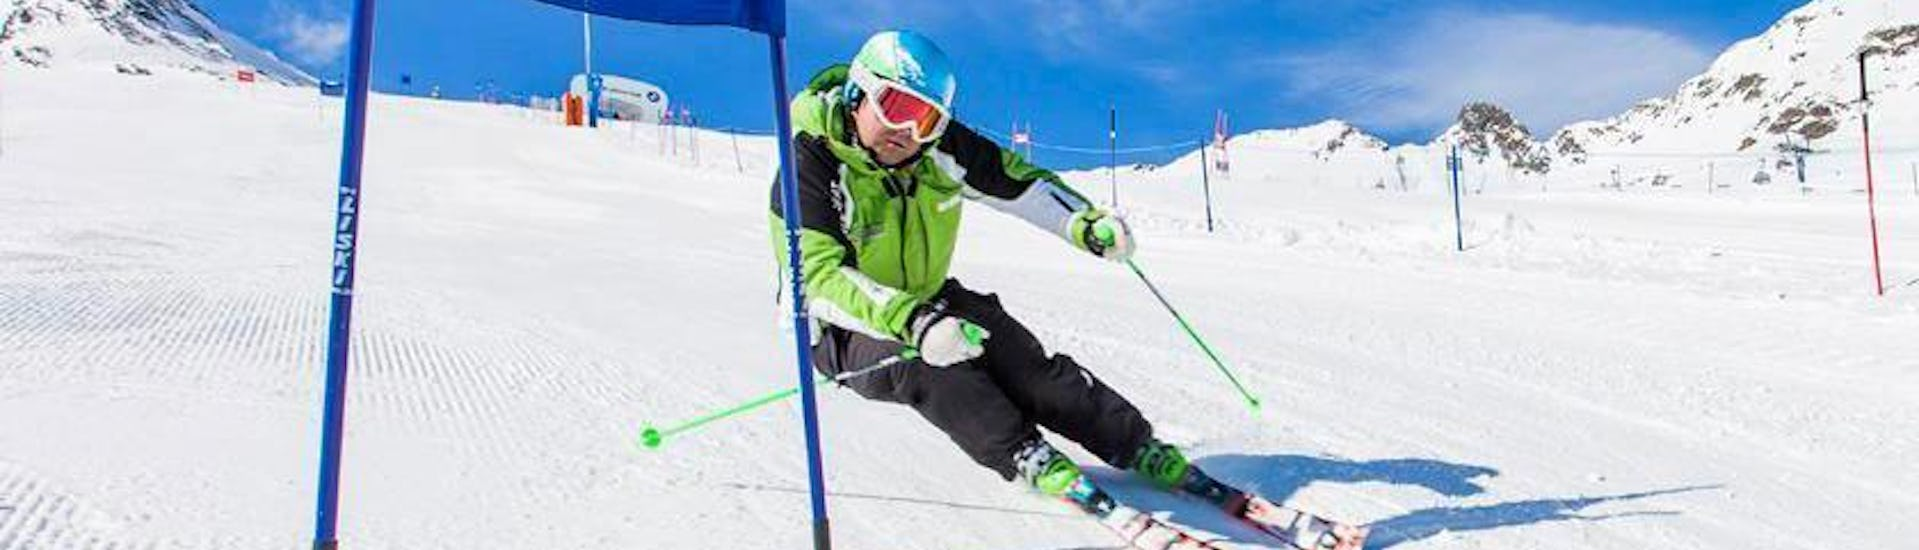 "A skier is mastering the slopes in the ski area of Ötztal in Sölden during the Private Ski Lessons ""Race Training"" for Adults - All Levels organized by the ski school Ski- and Bike School Ötztal Sölden."